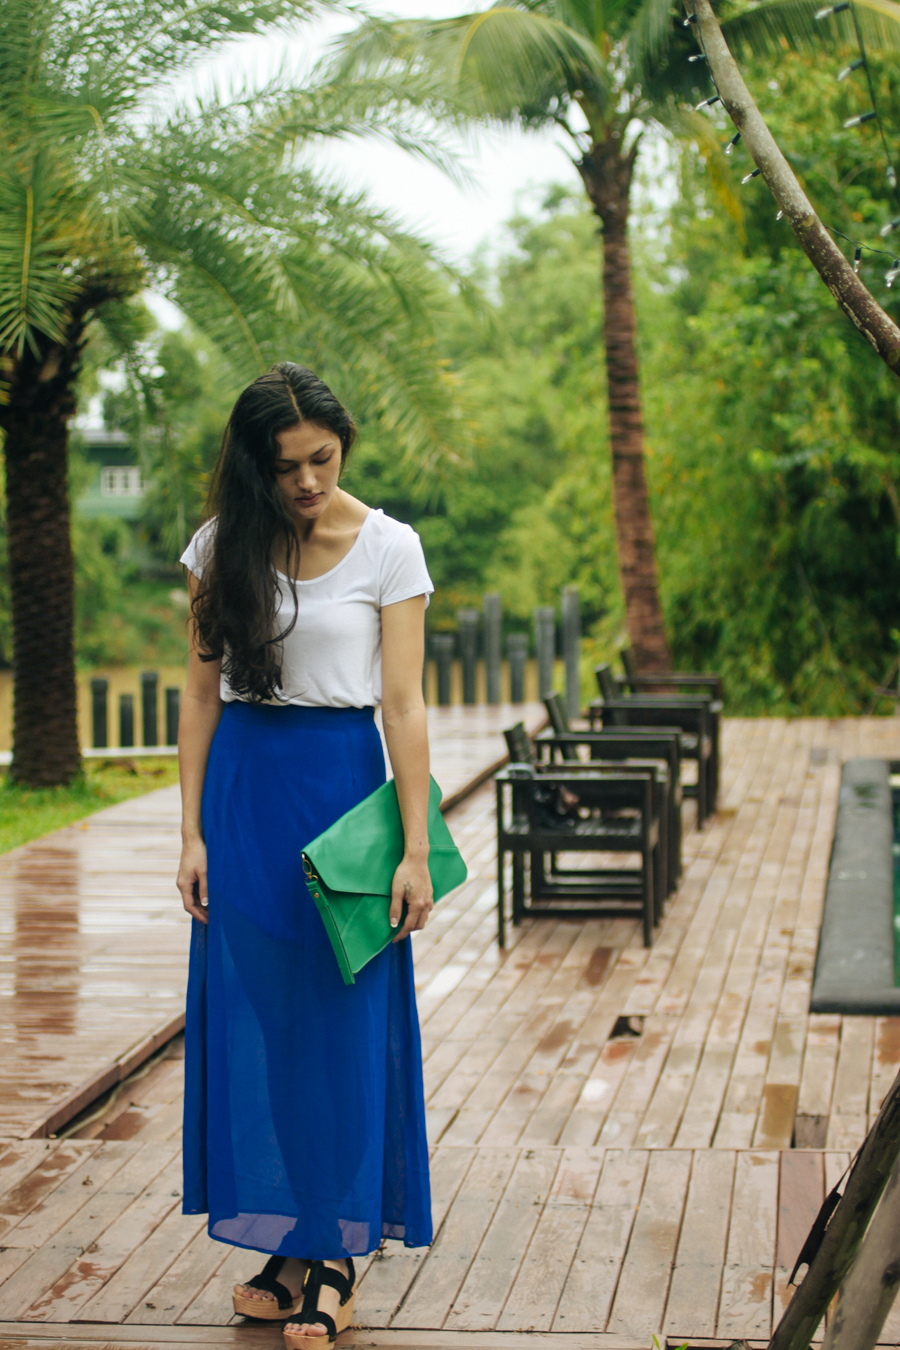 Thai fashion blogger wearing a blue maxi skirt at the Aroonsawad Riverview Resort in Prachinburi.